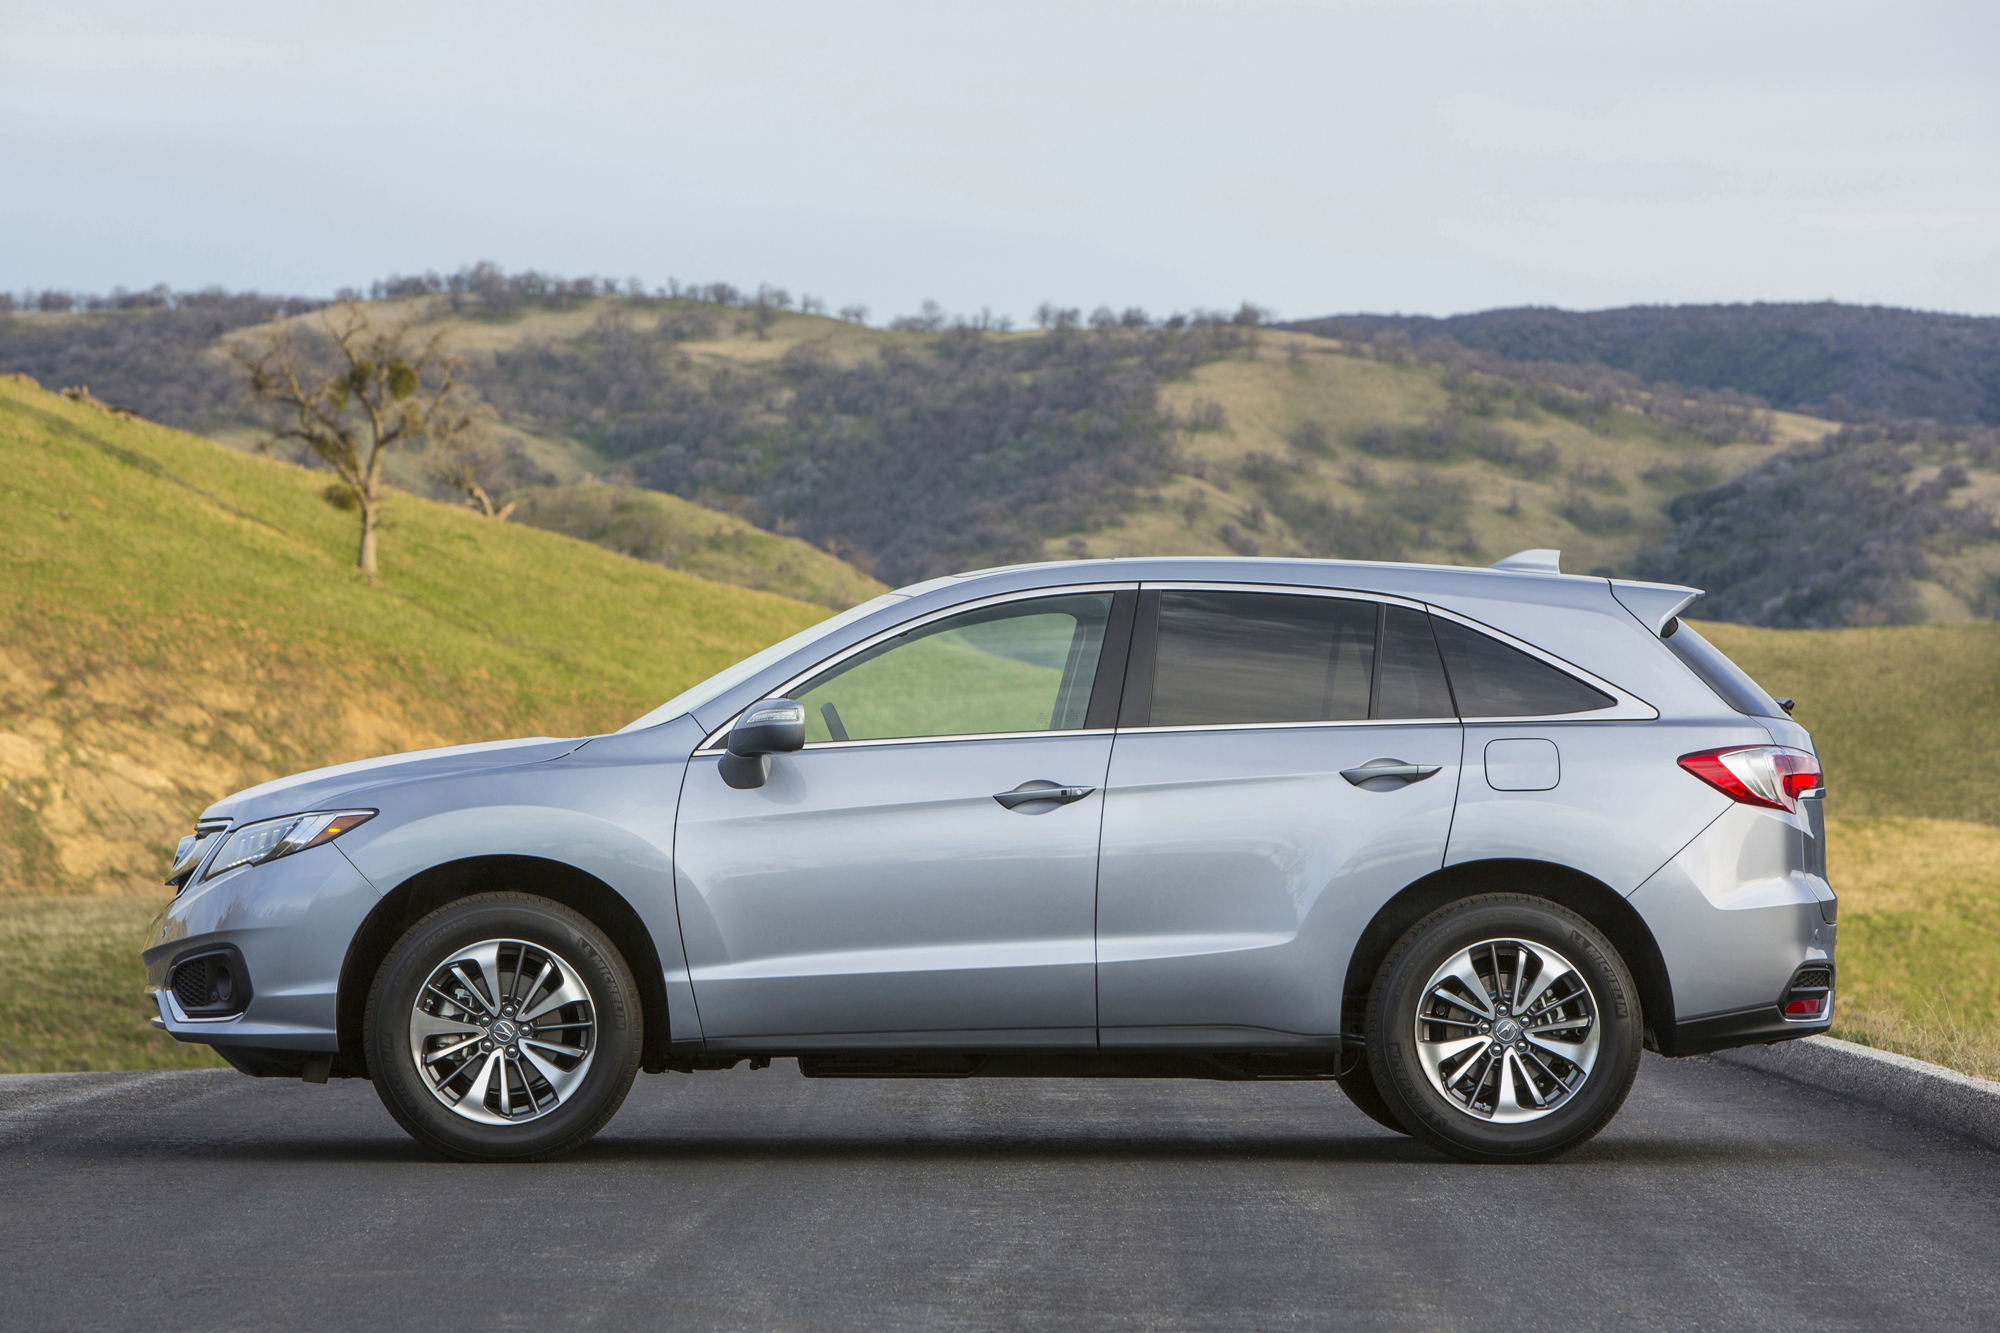 slate white hopkins earn overall star in acura hires highrises with latest safety silver rating exterior rdx package to advance metallic